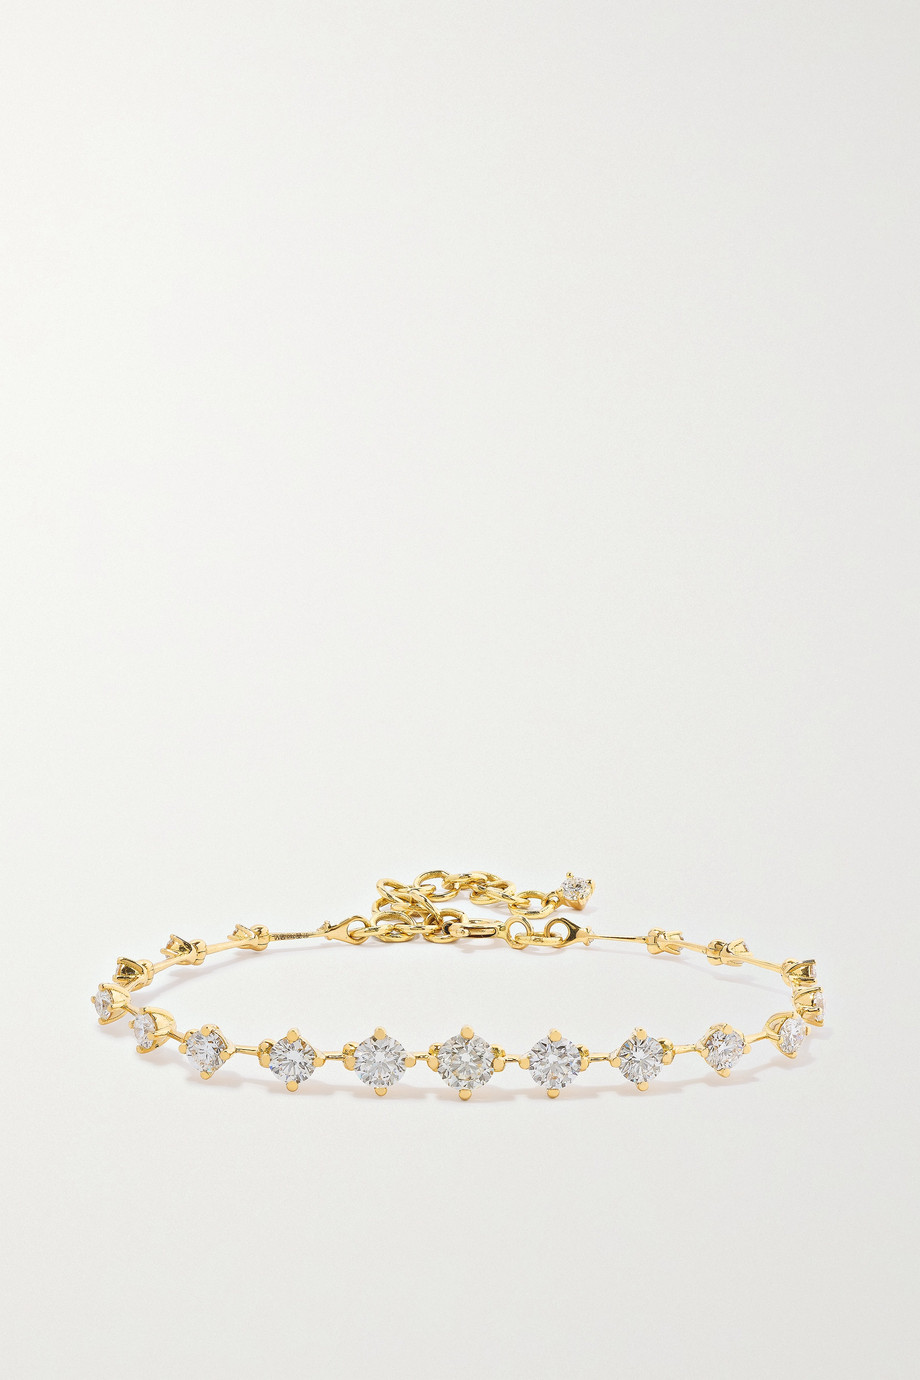 Fernando Jorge Sequence 18-karat gold diamond bracelet